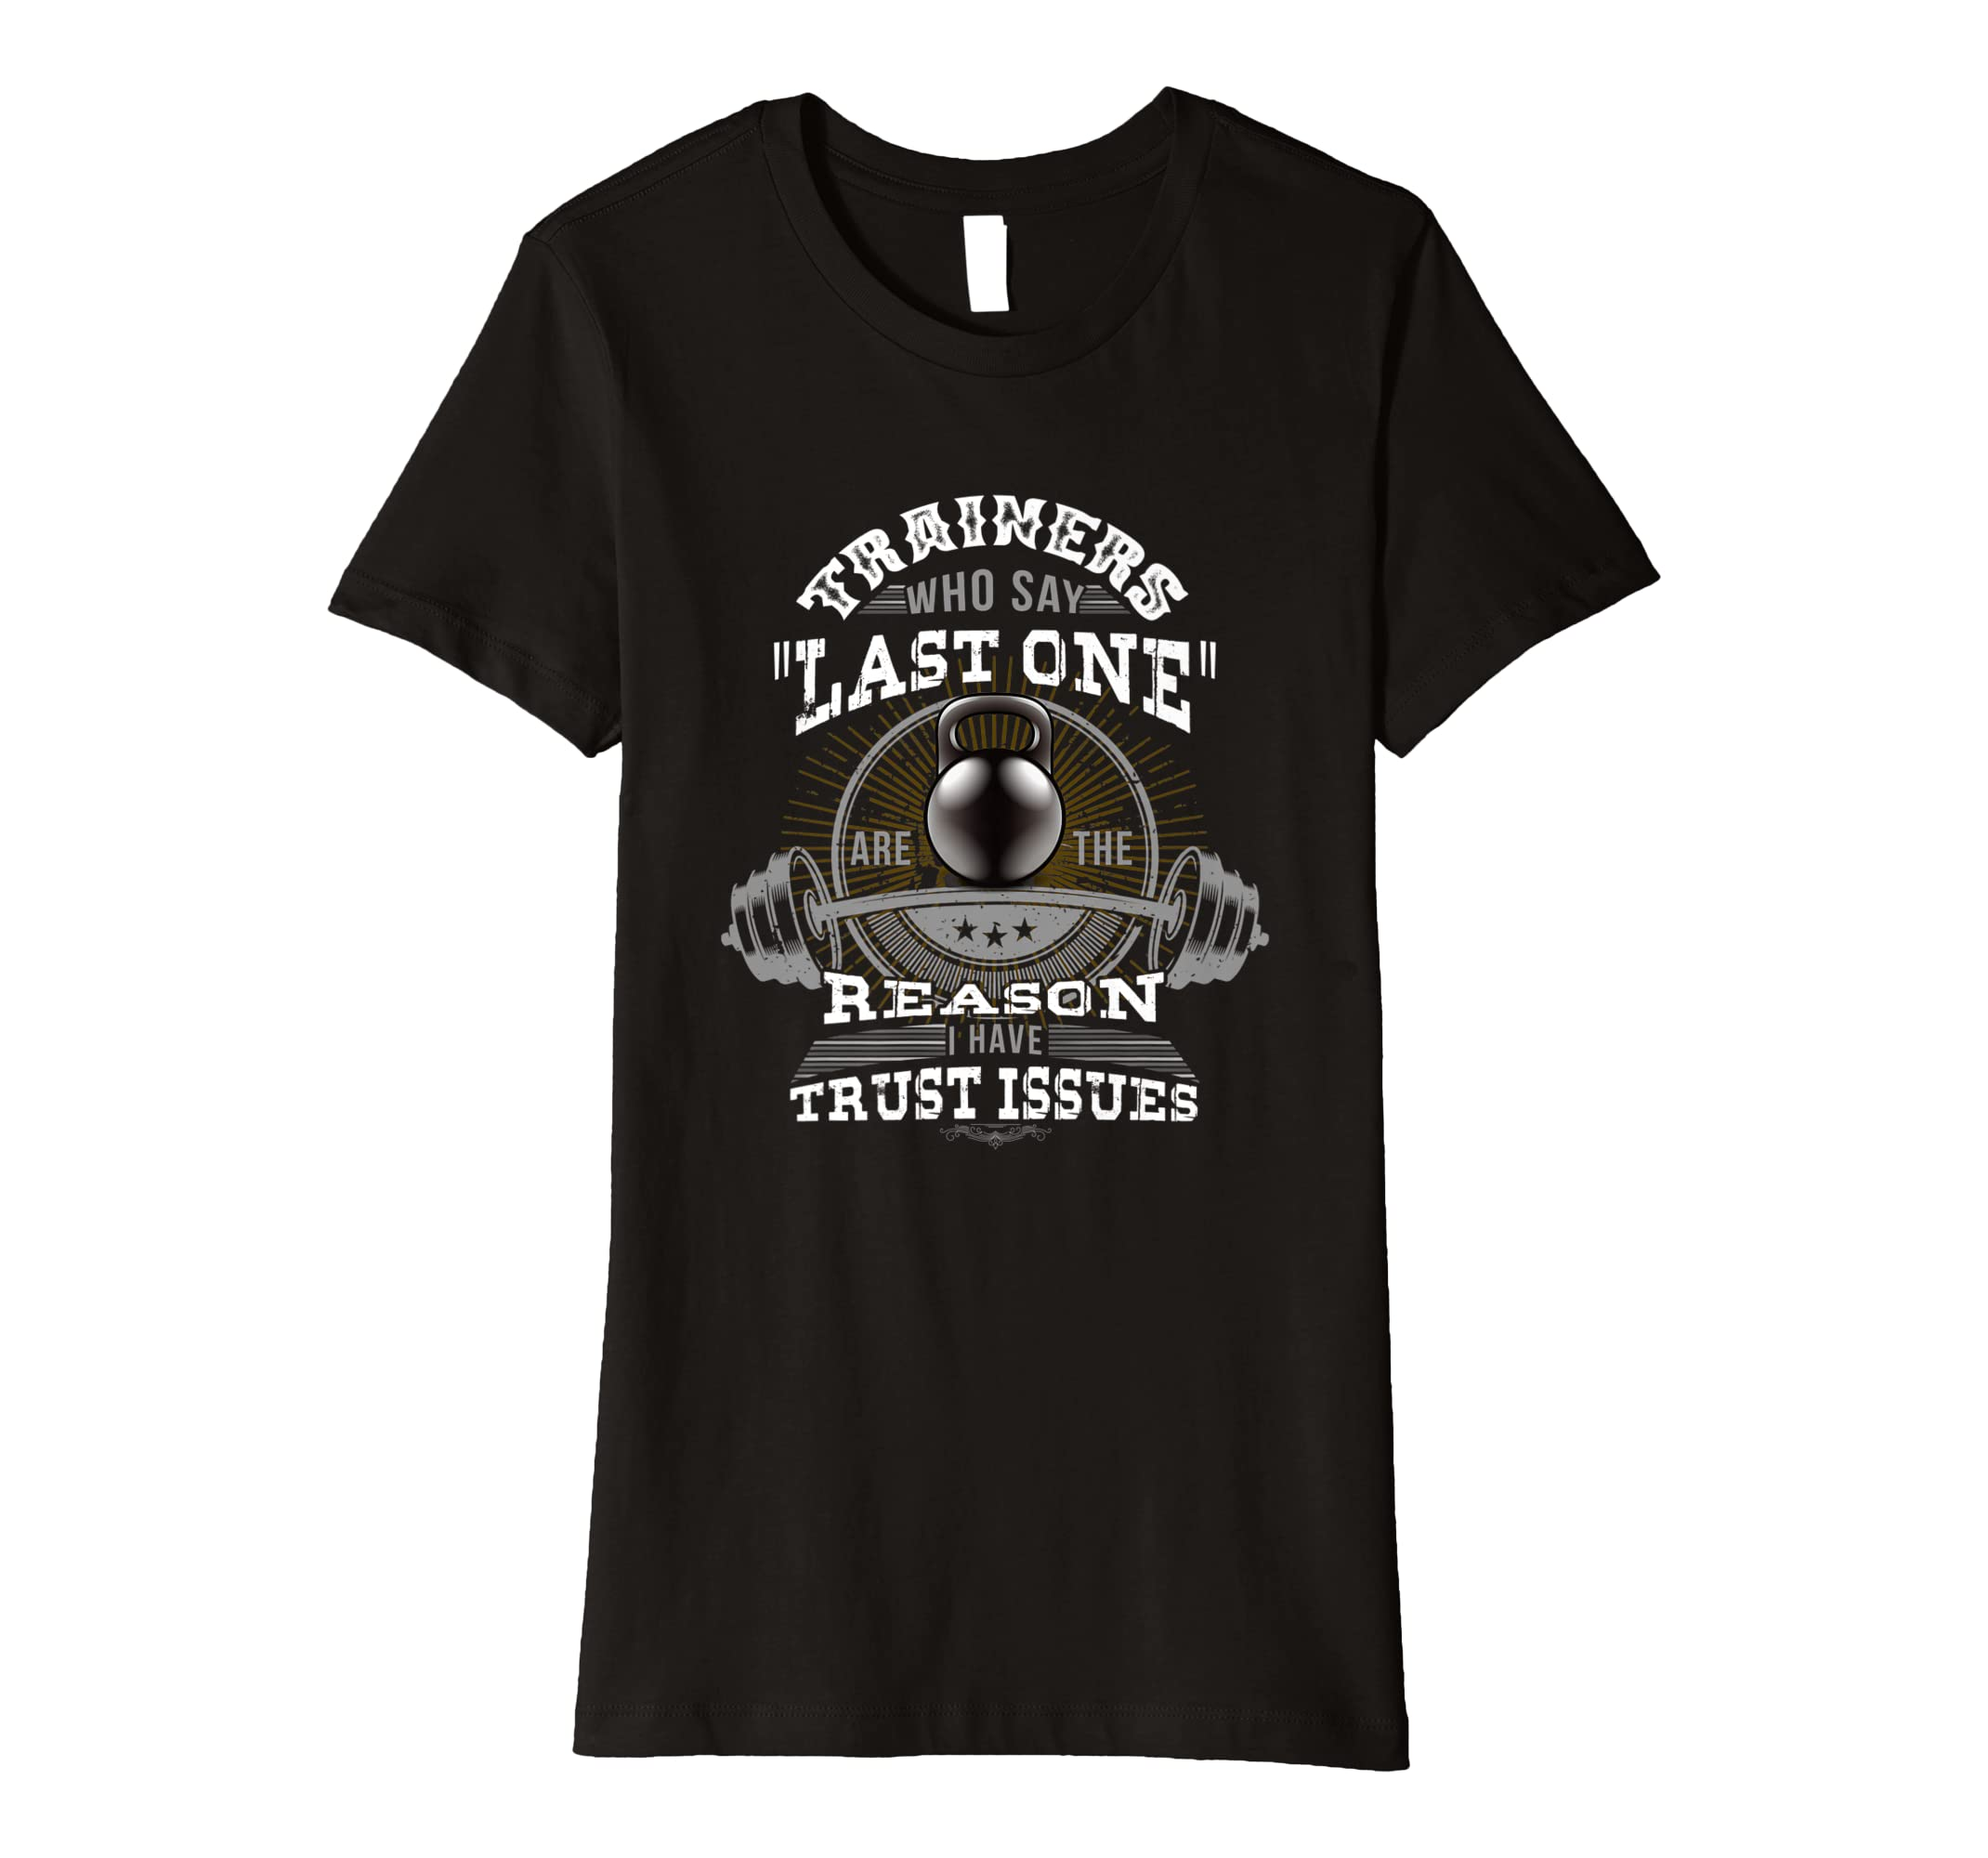 'TRAINERS WHO SAY LAST ONE' Workout T shirt for Men & Women-Awarplus